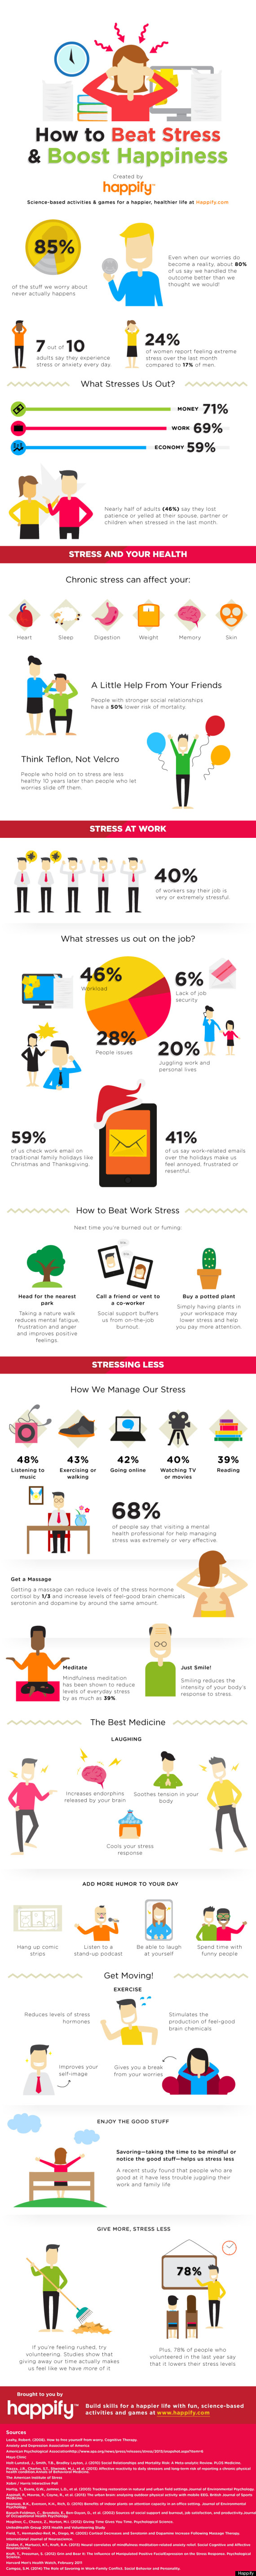 3 Step to use Mindfulness for a Stress Free Life